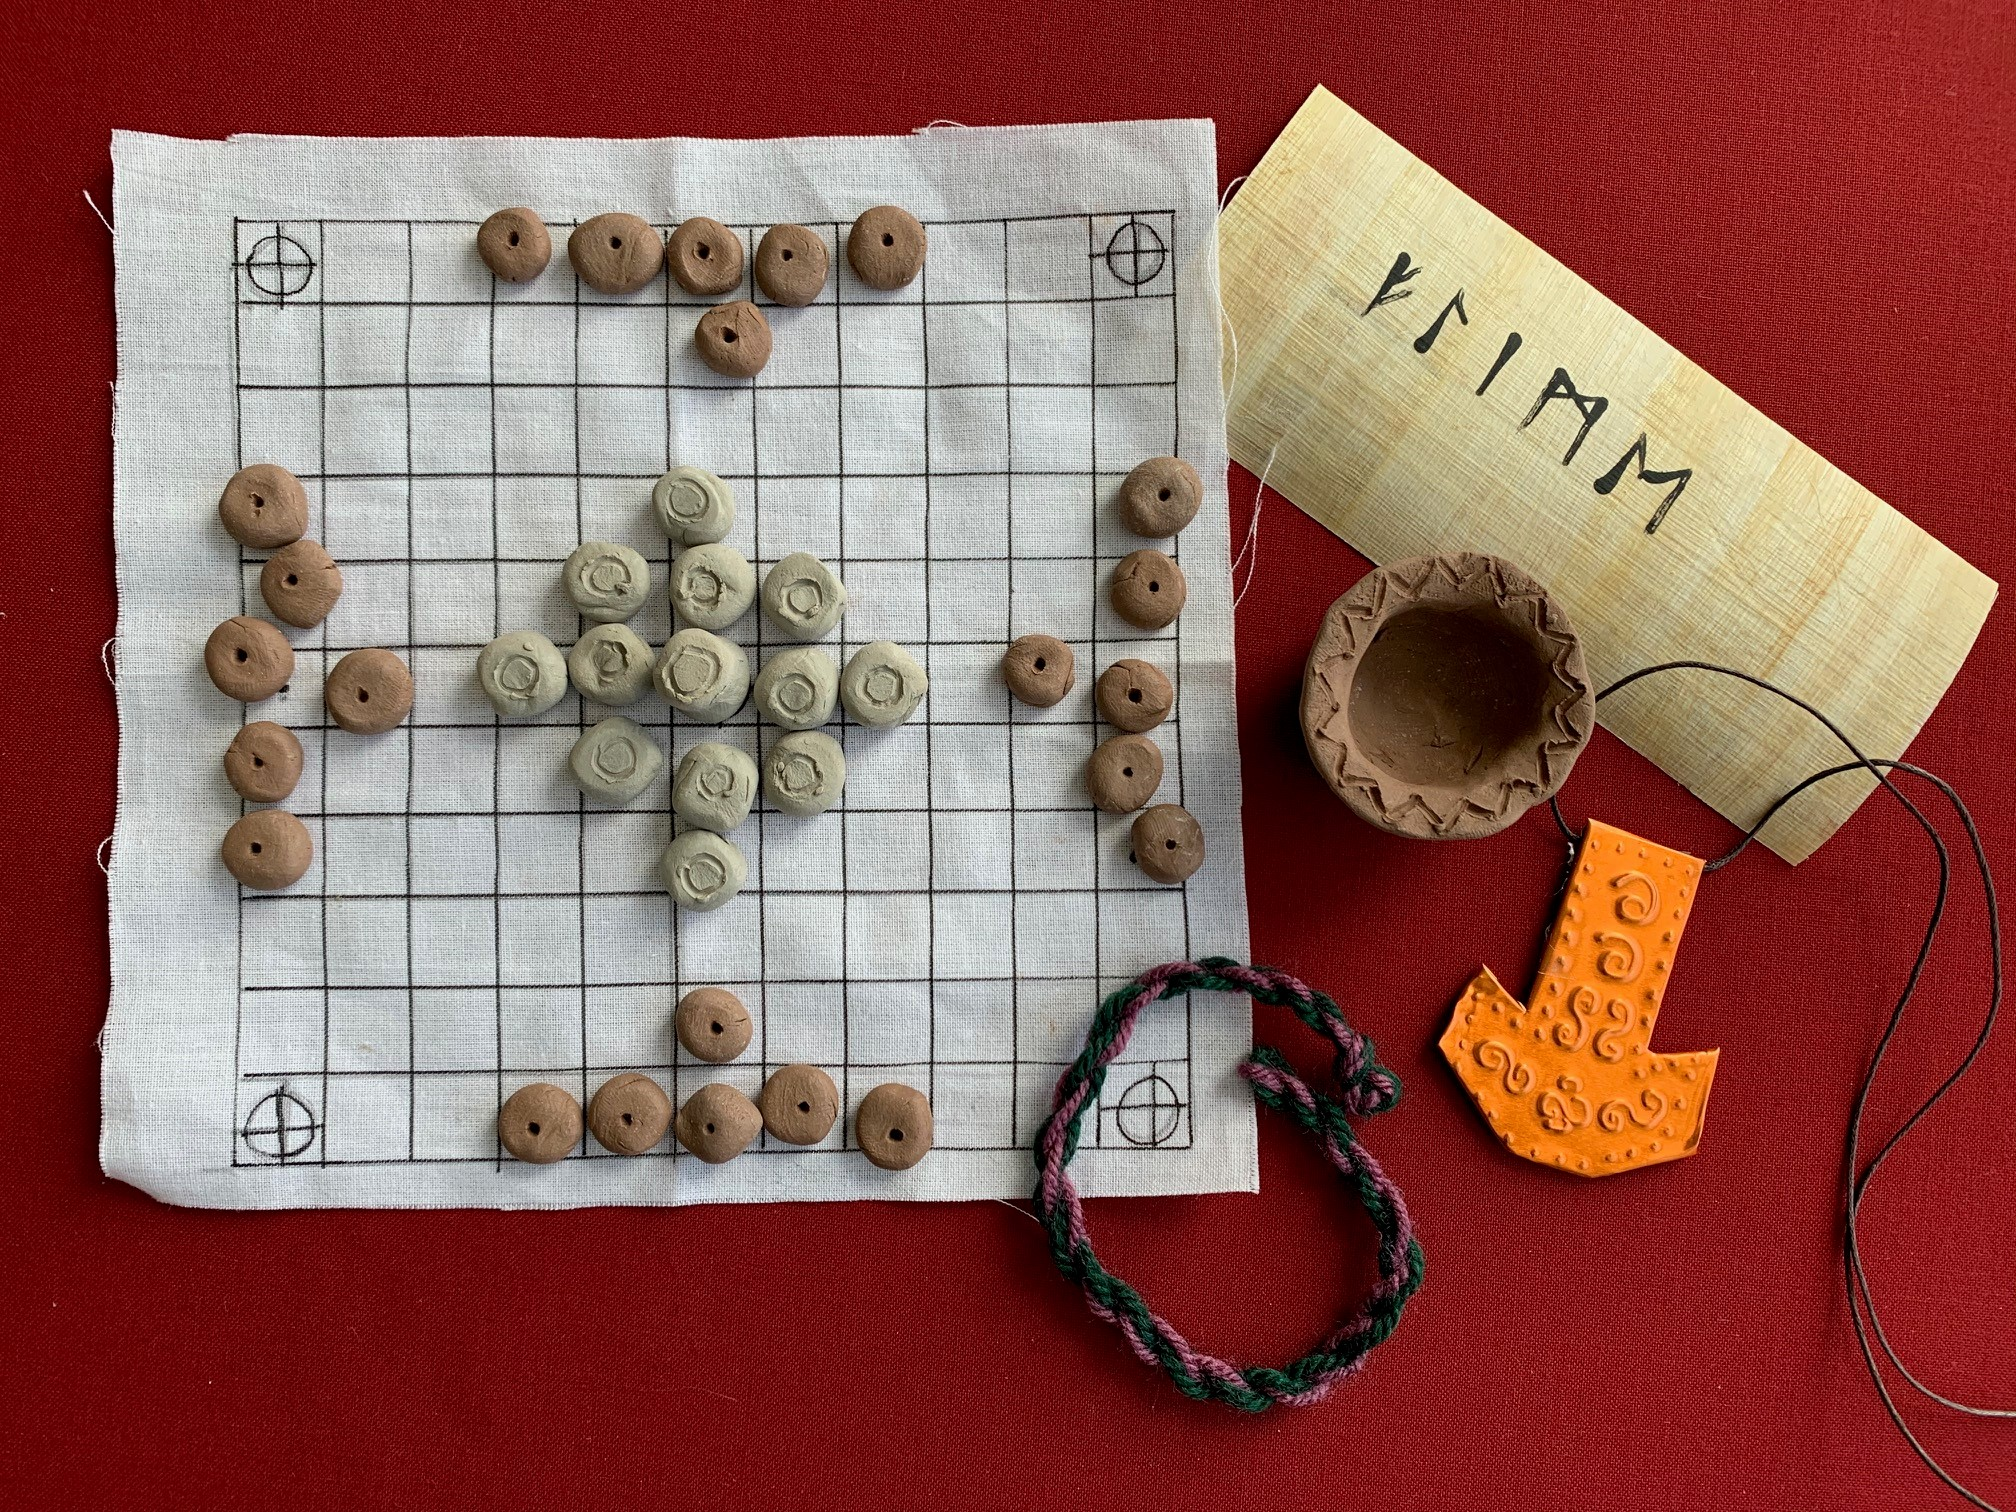 The projects include a hnefatafl game set, a writing sample in runes, a clay pot, a Thor's hammer amulet and a woolen braid.